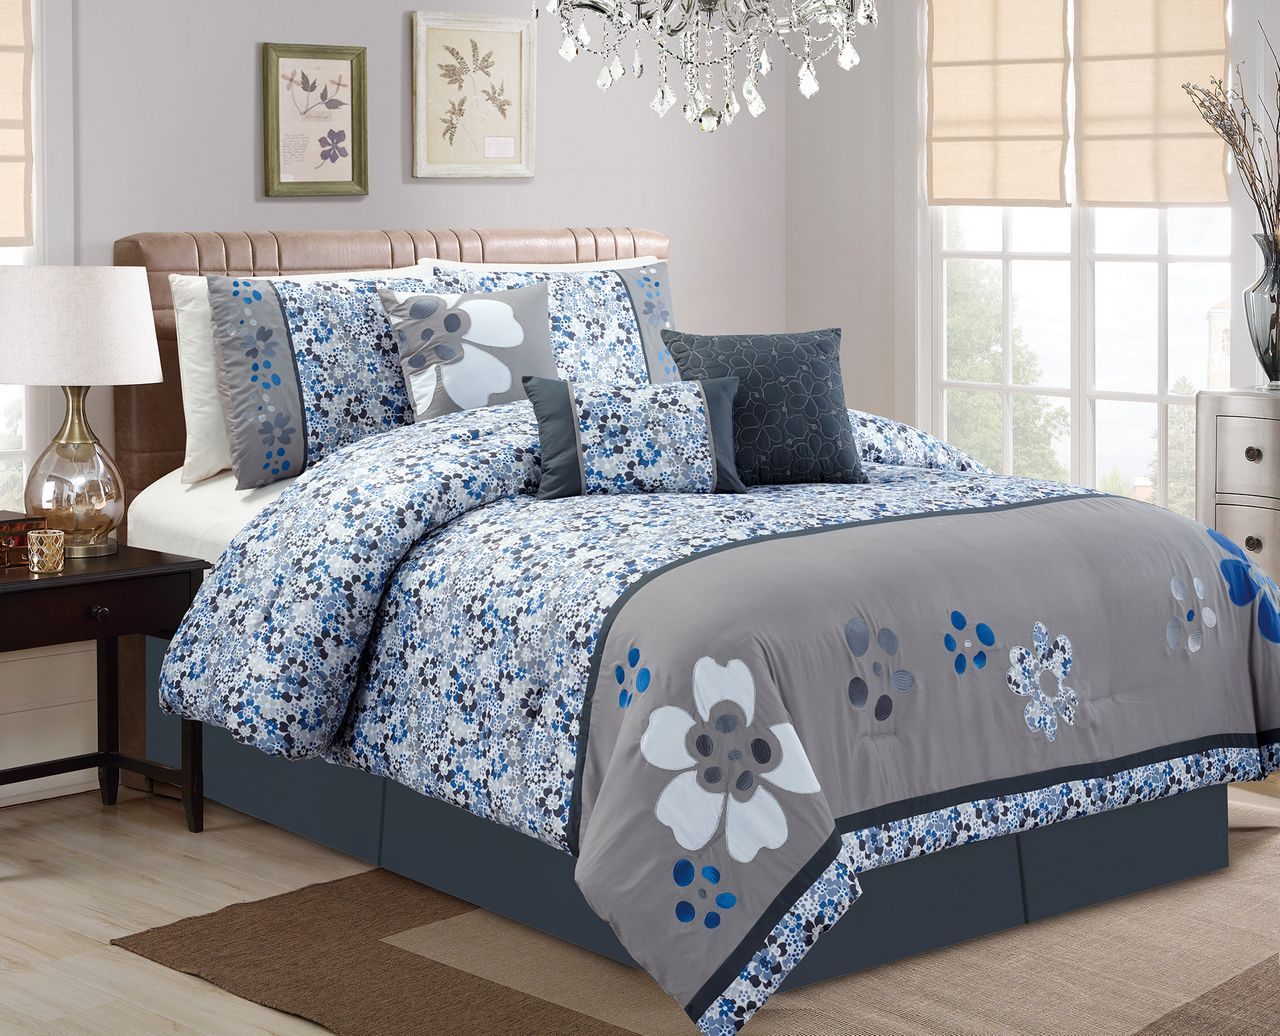 Piece Cherry Blossom BlueGray Comforter Set - Blue and grey comforter sets